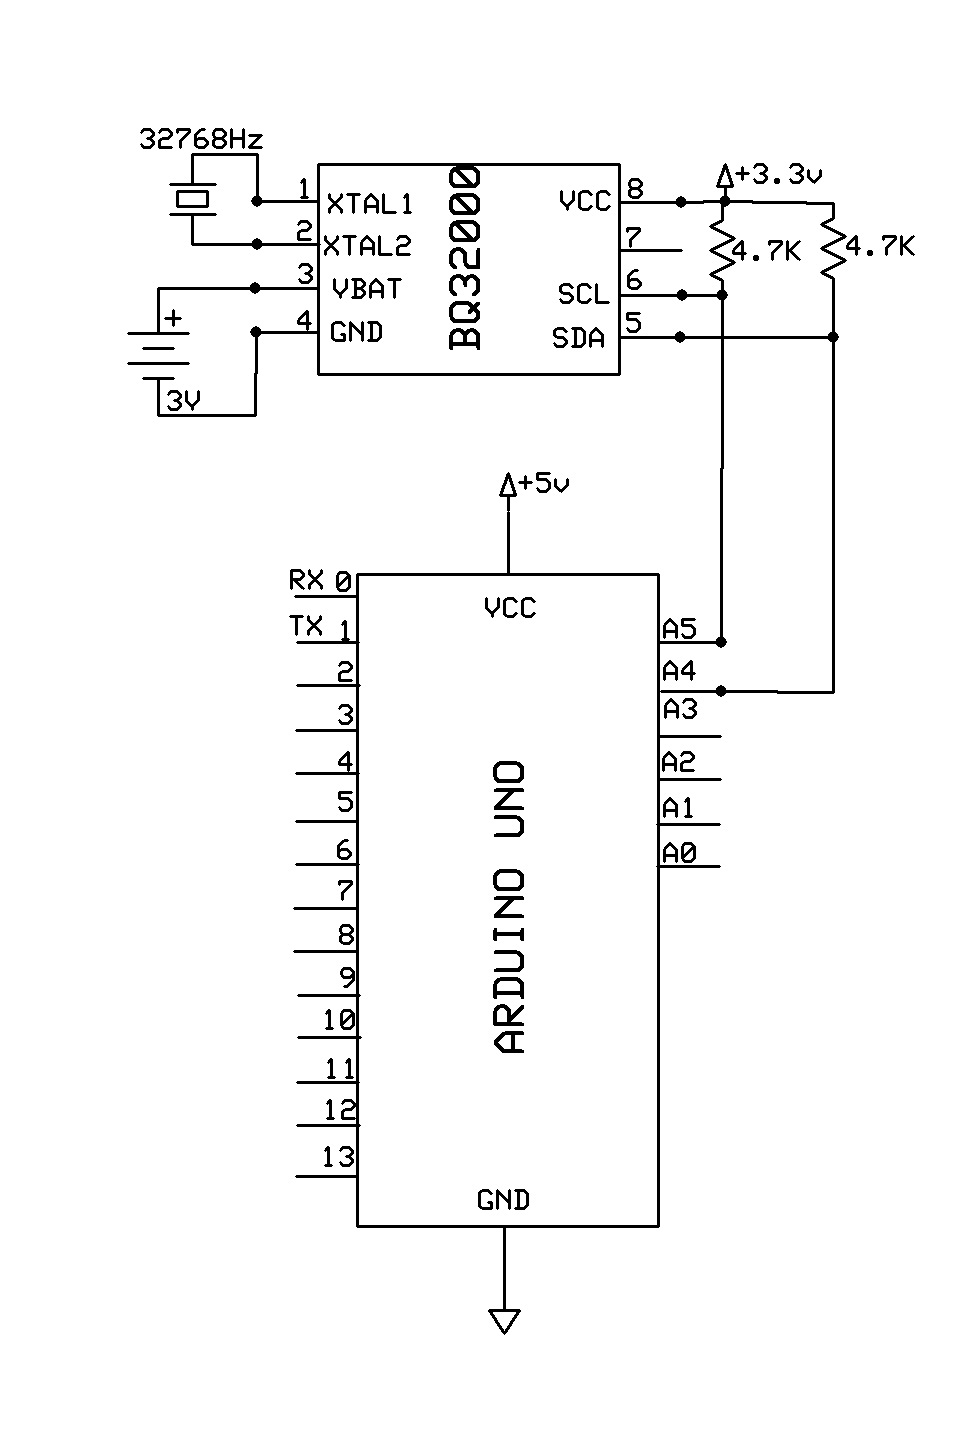 EMERGING TECHNOLOGIES: REAL TIME CLOCK (RTC) USING SMD IC